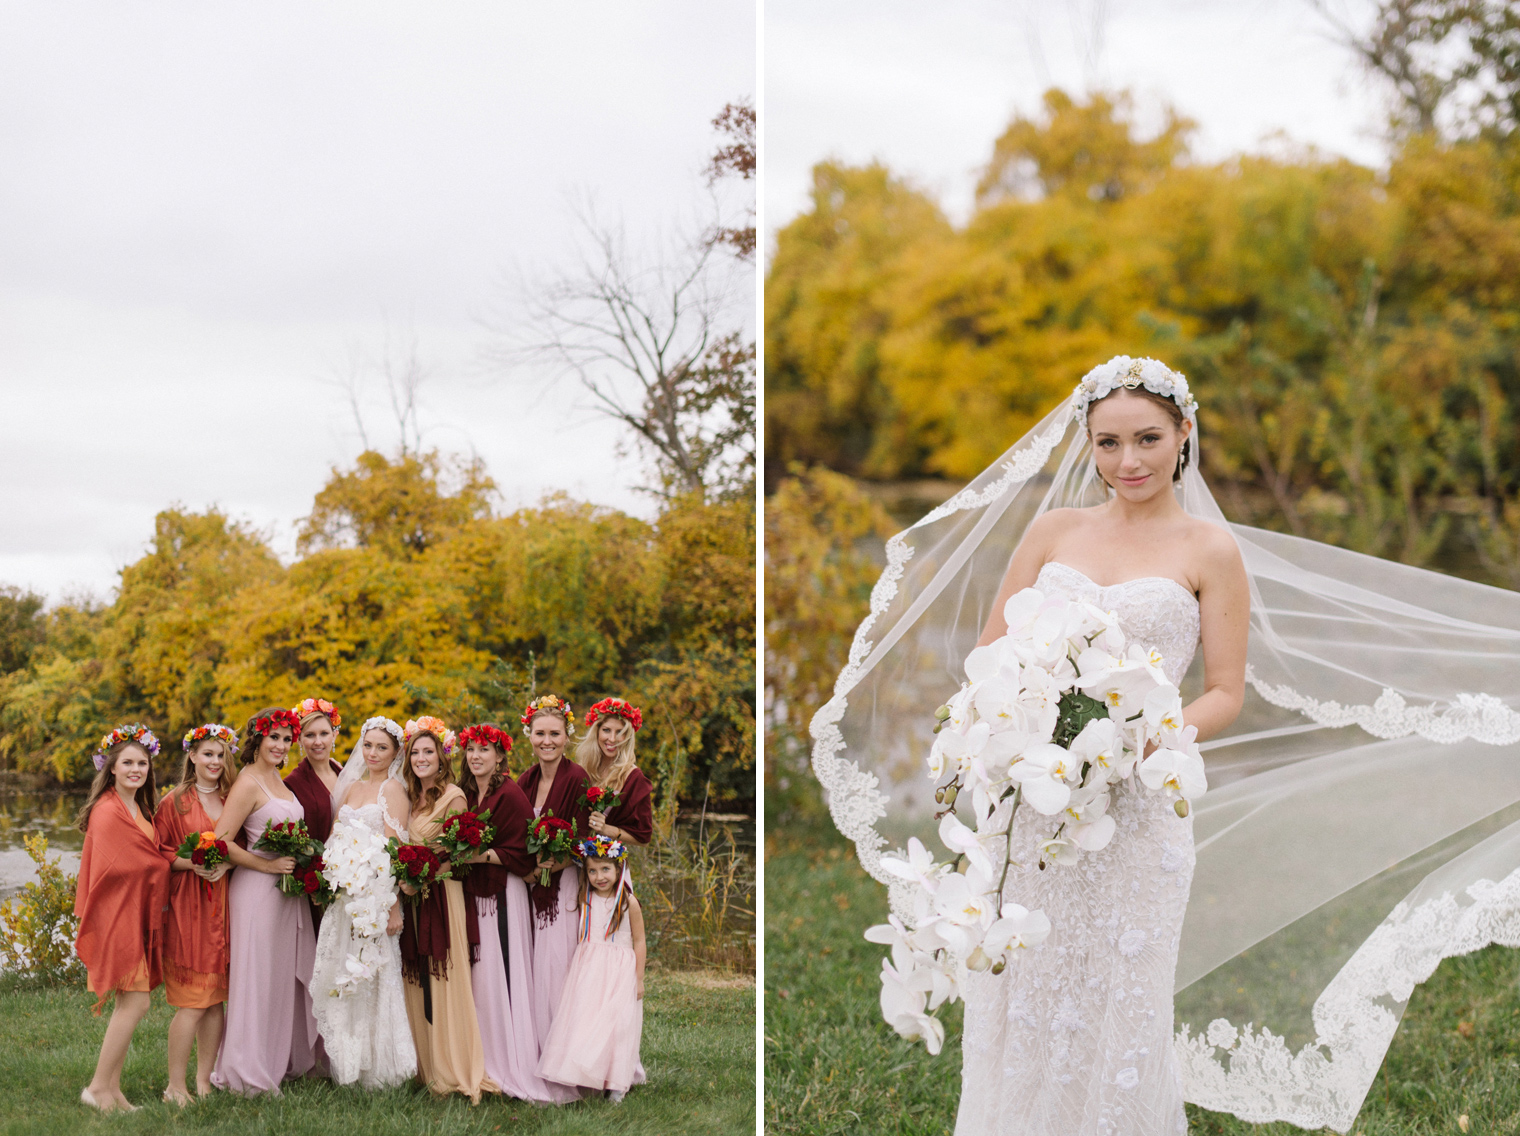 Bride and bridesmaids wear traditional Ukrainian wedding flower crowns.